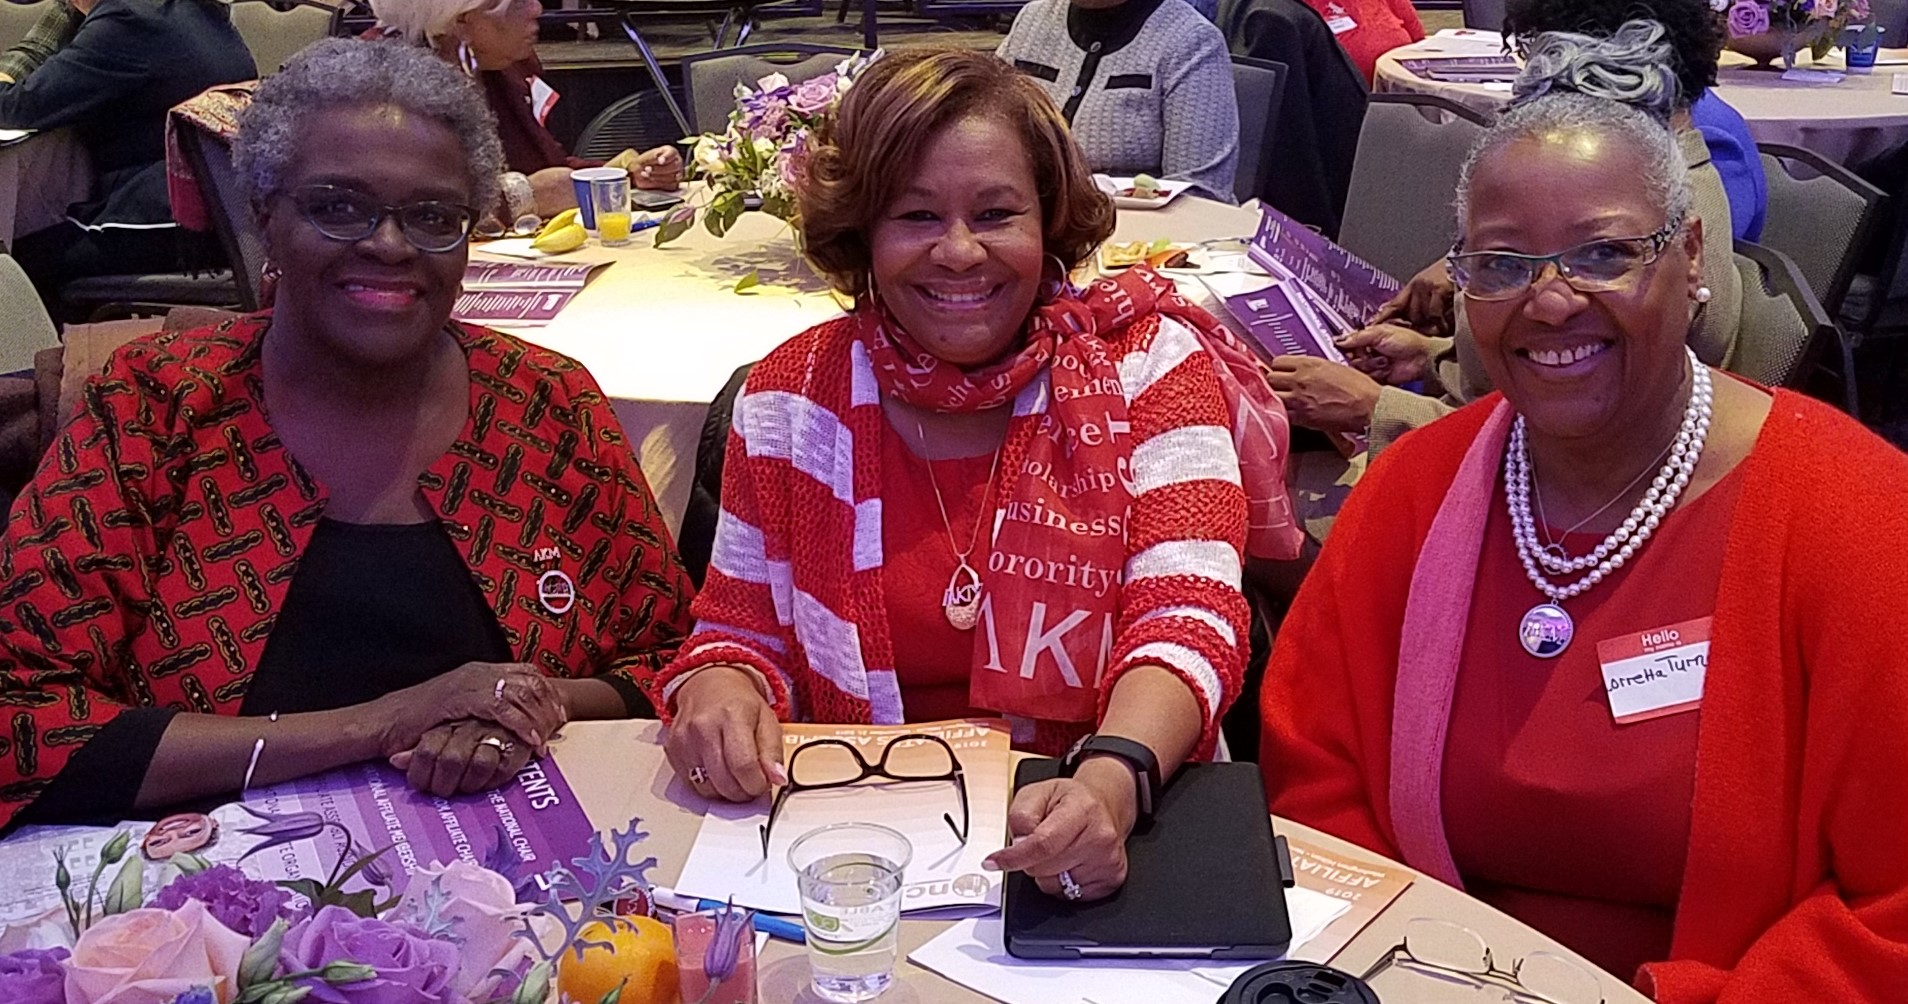 LKM Sorors at NCNW Affiliates Assembly